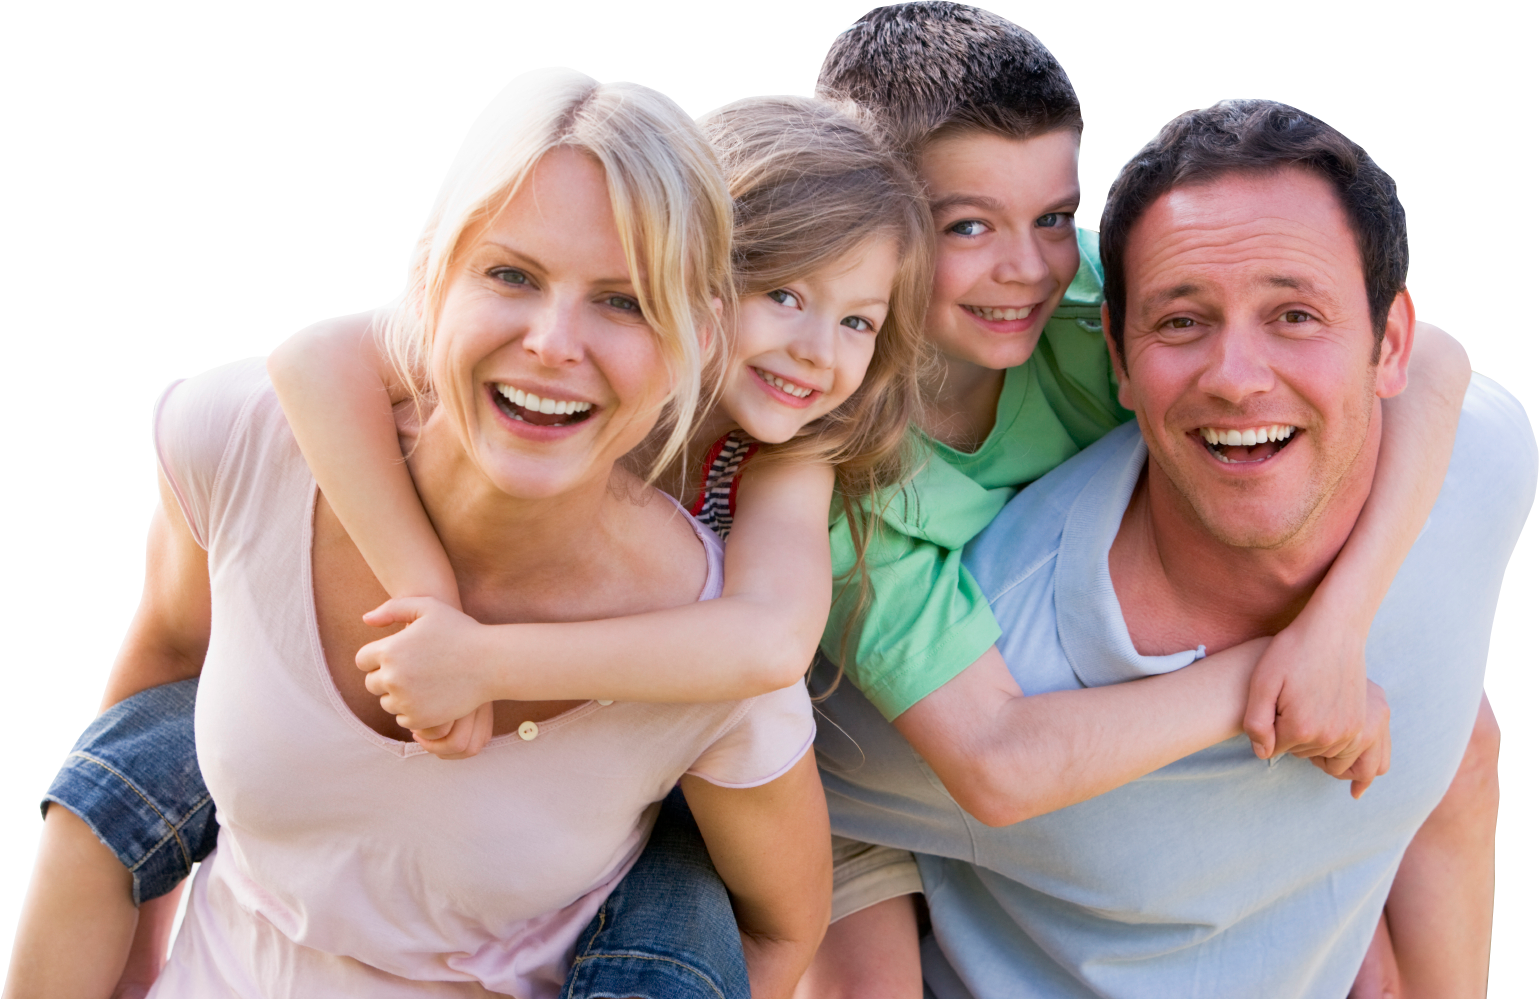 Family Png Image - Family Picture, Transparent background PNG HD thumbnail